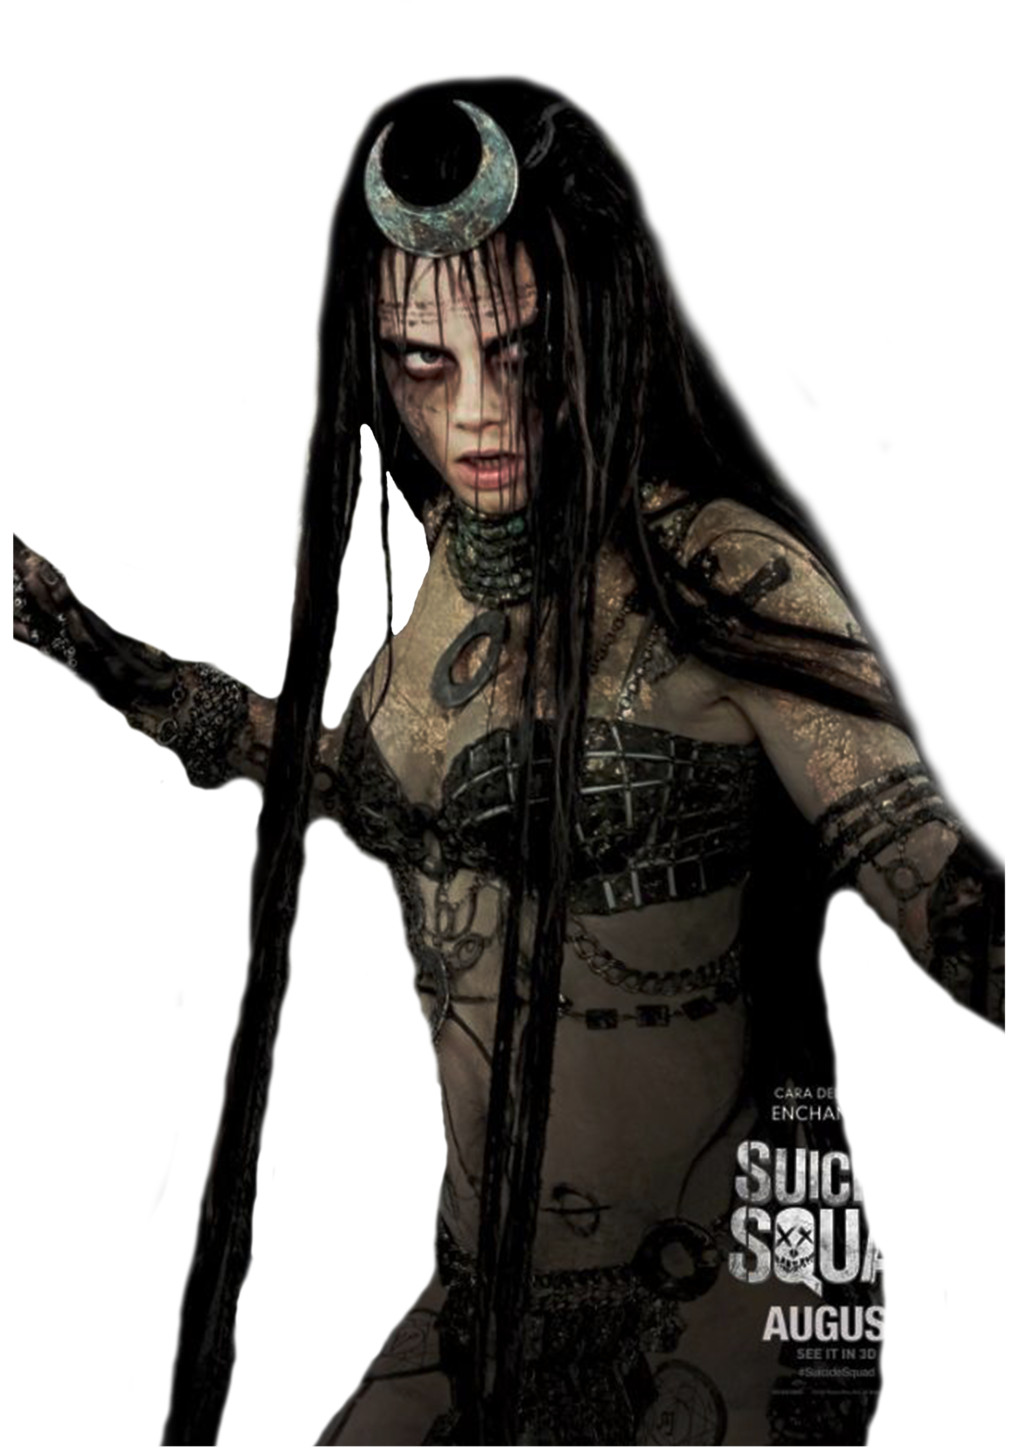 . PlusPng.com Enchantress Suicide Squad - Transparent #3 by Natan-Ferri - Enchantress HD PNG